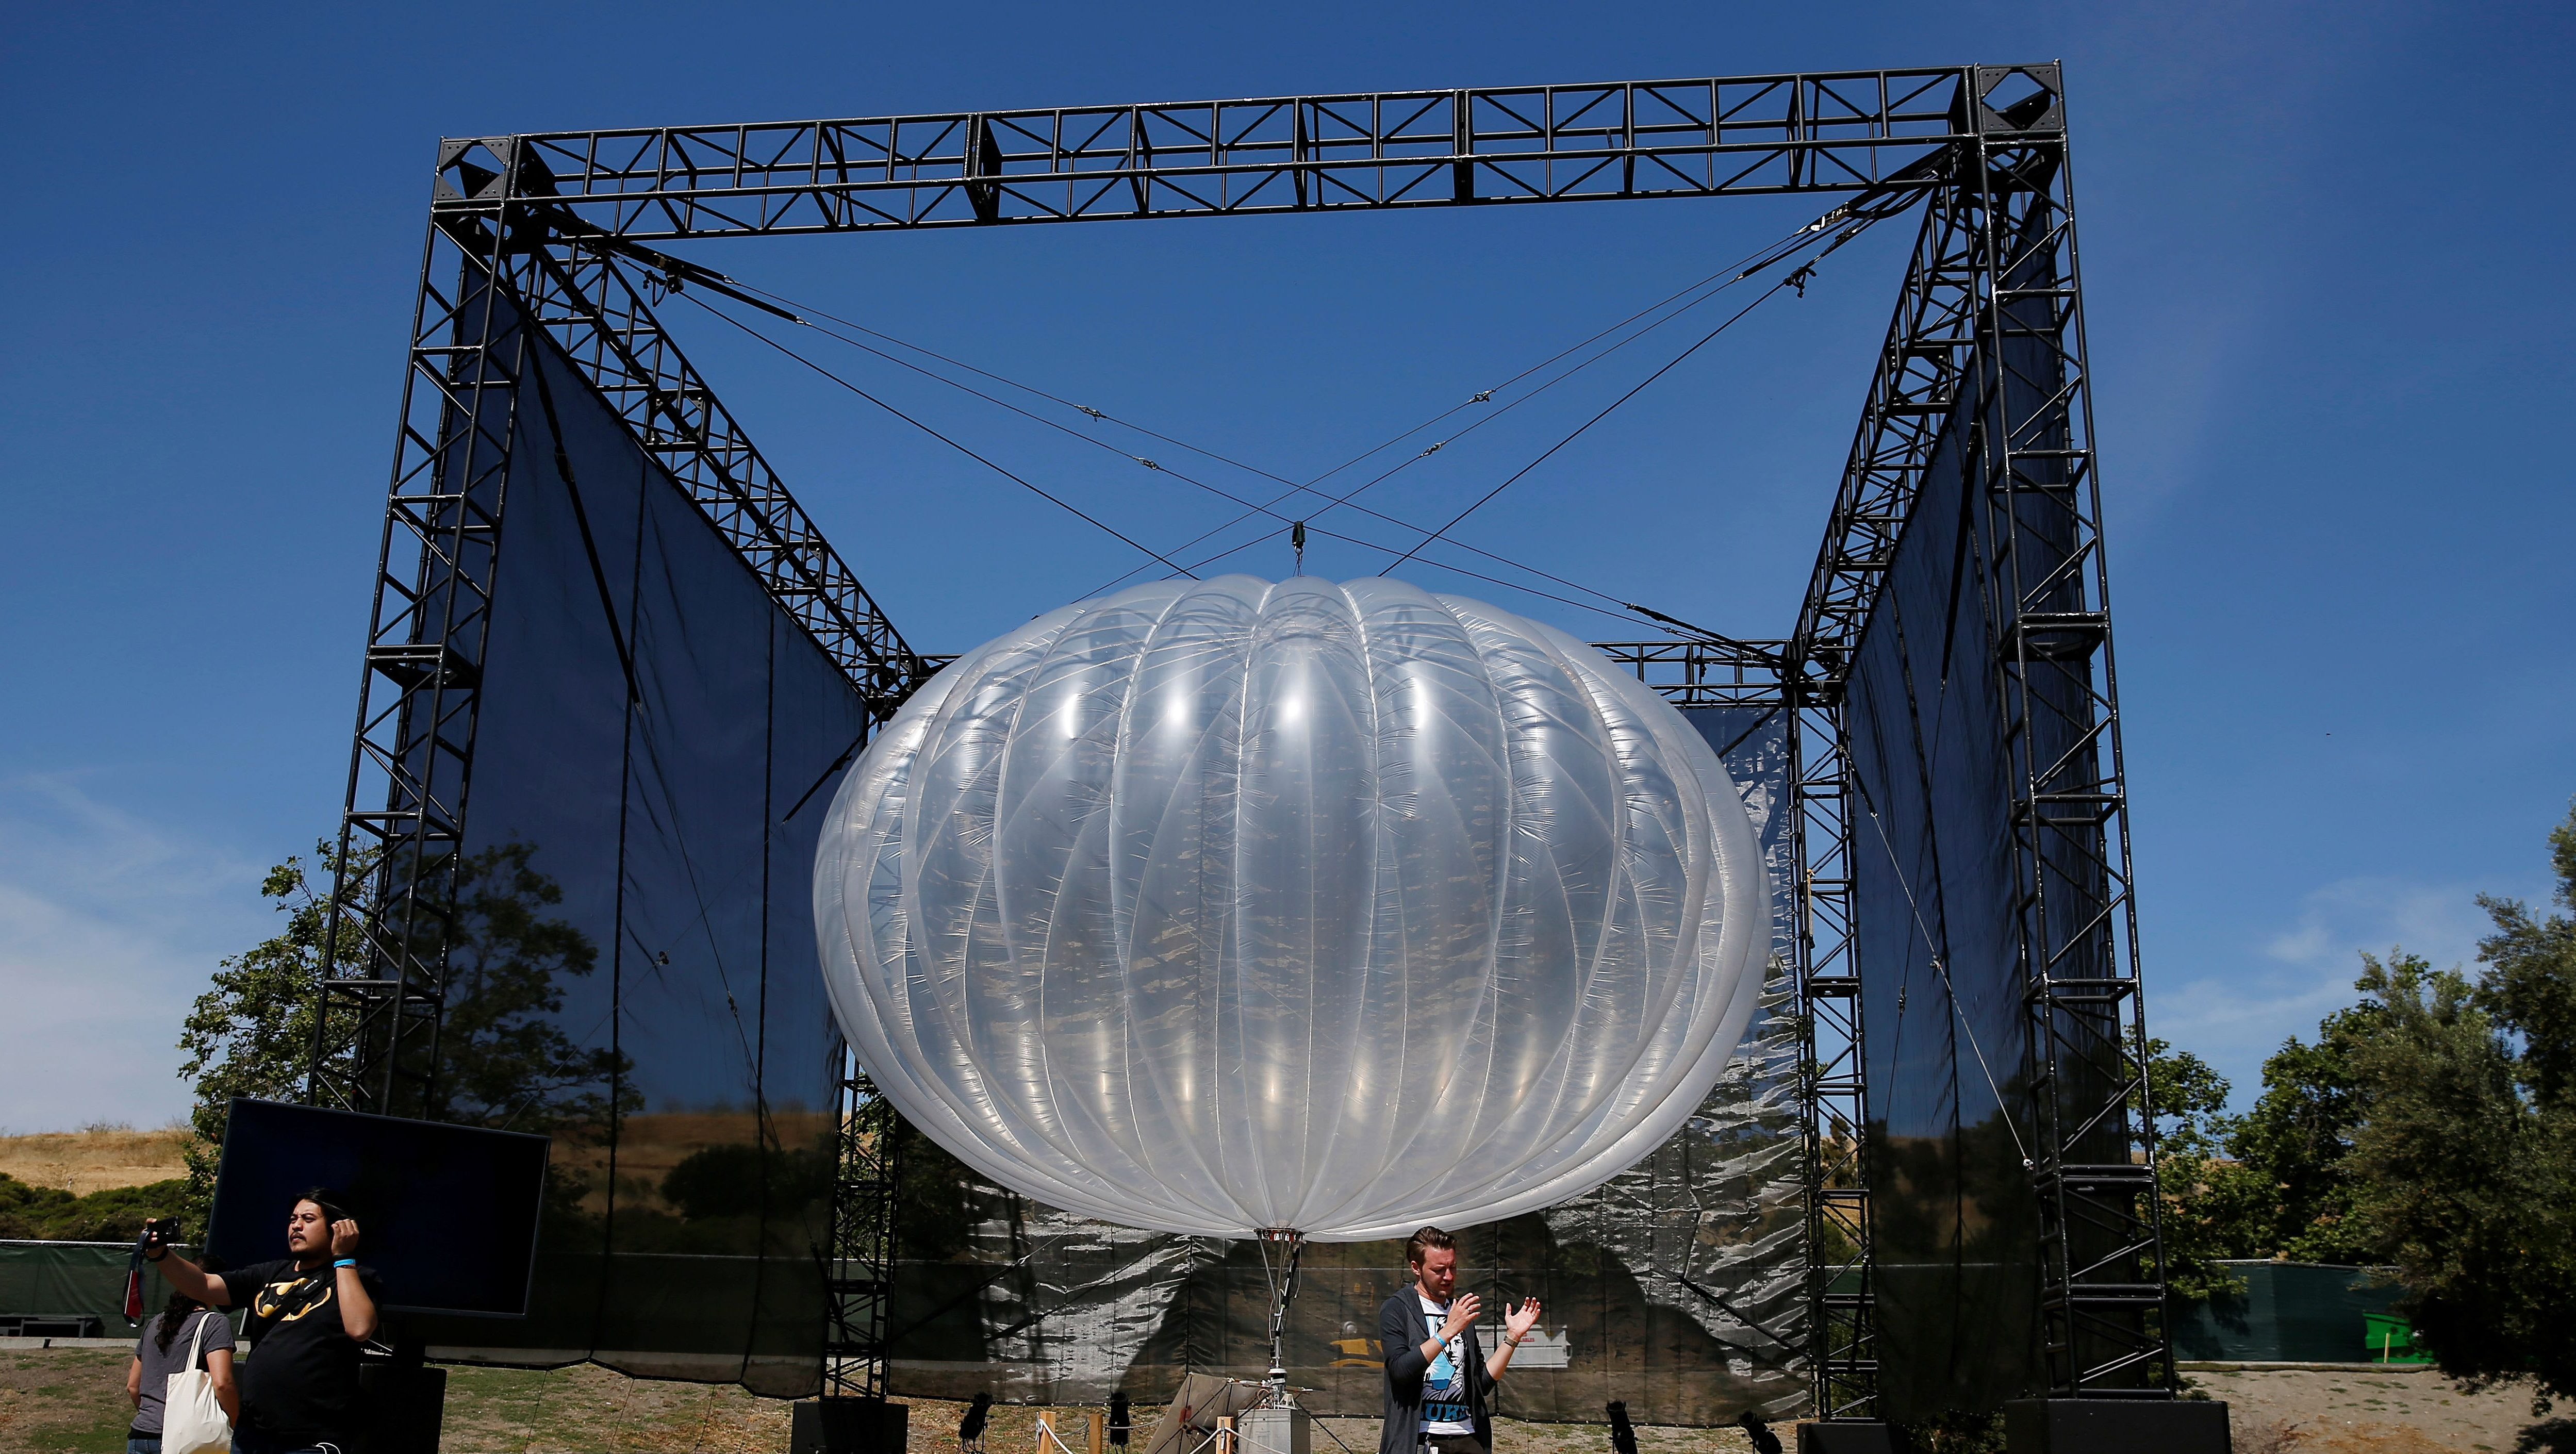 A Google Project Loon internet balloon is seen at the Google I/O 2016 developers conference in Mountain View, California May 19, 2016.